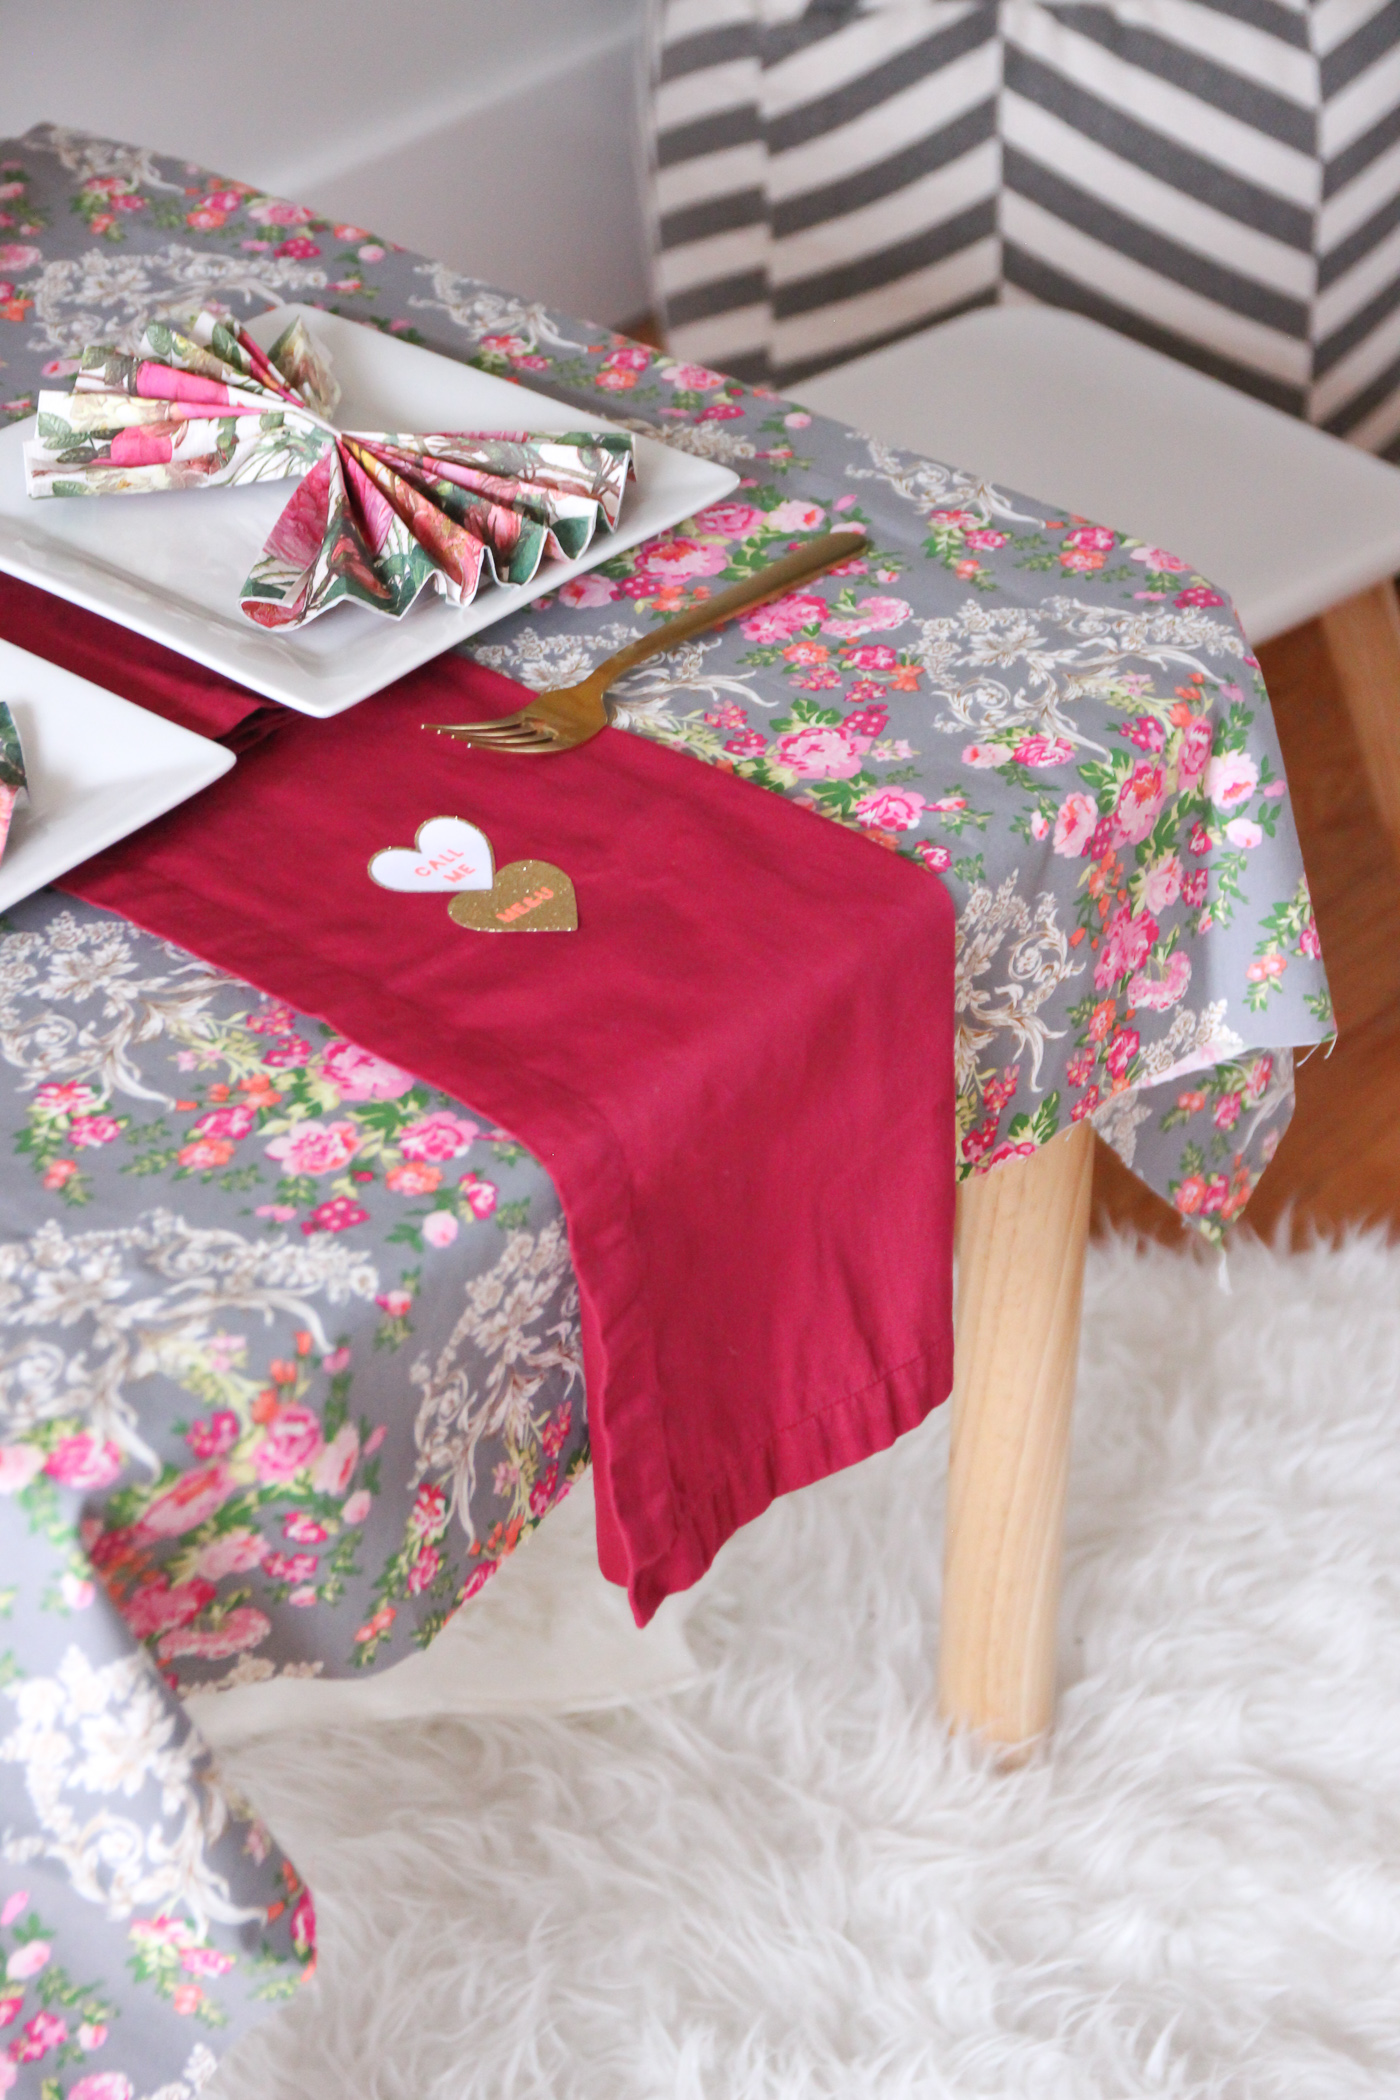 We started by clearing out the dining room to make room for Taylor's table since it was a little more exciting than the everyday table (glad Eric didn't mind!). The tablecloth is actually just a fabric remnant from another project. I thought I would have a pillow made but the size turned out to be perfect for this tablecloth.